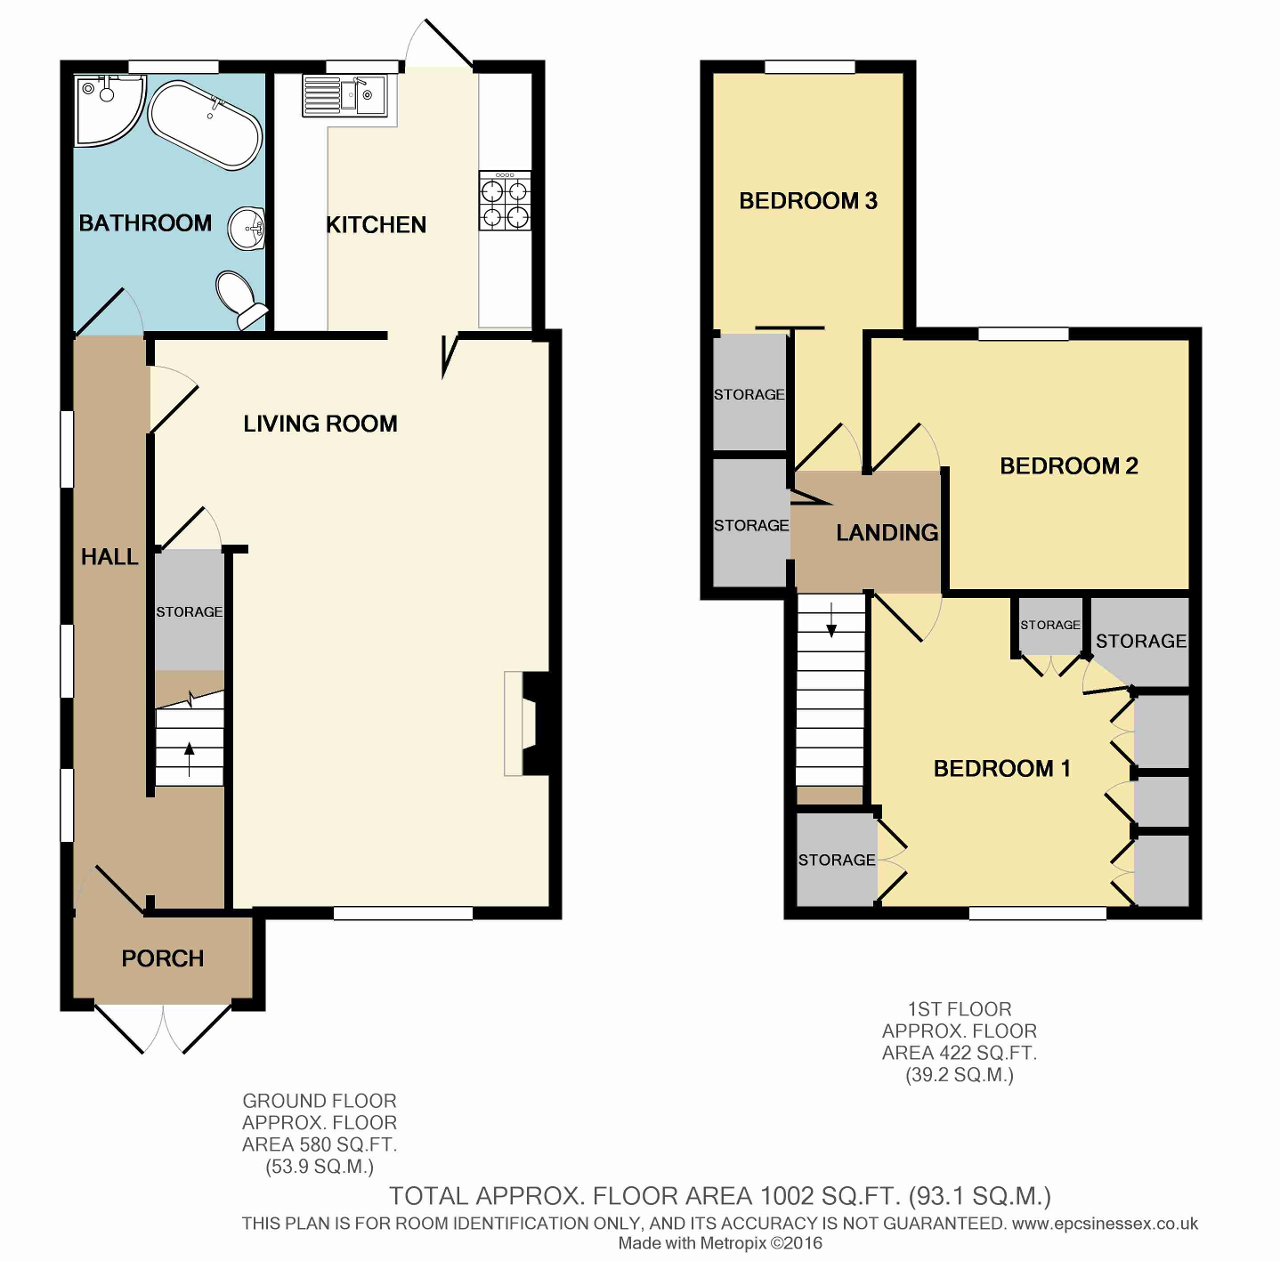 Floorplan of Hewett Road, Dagenham, Essex, RM8 2XT